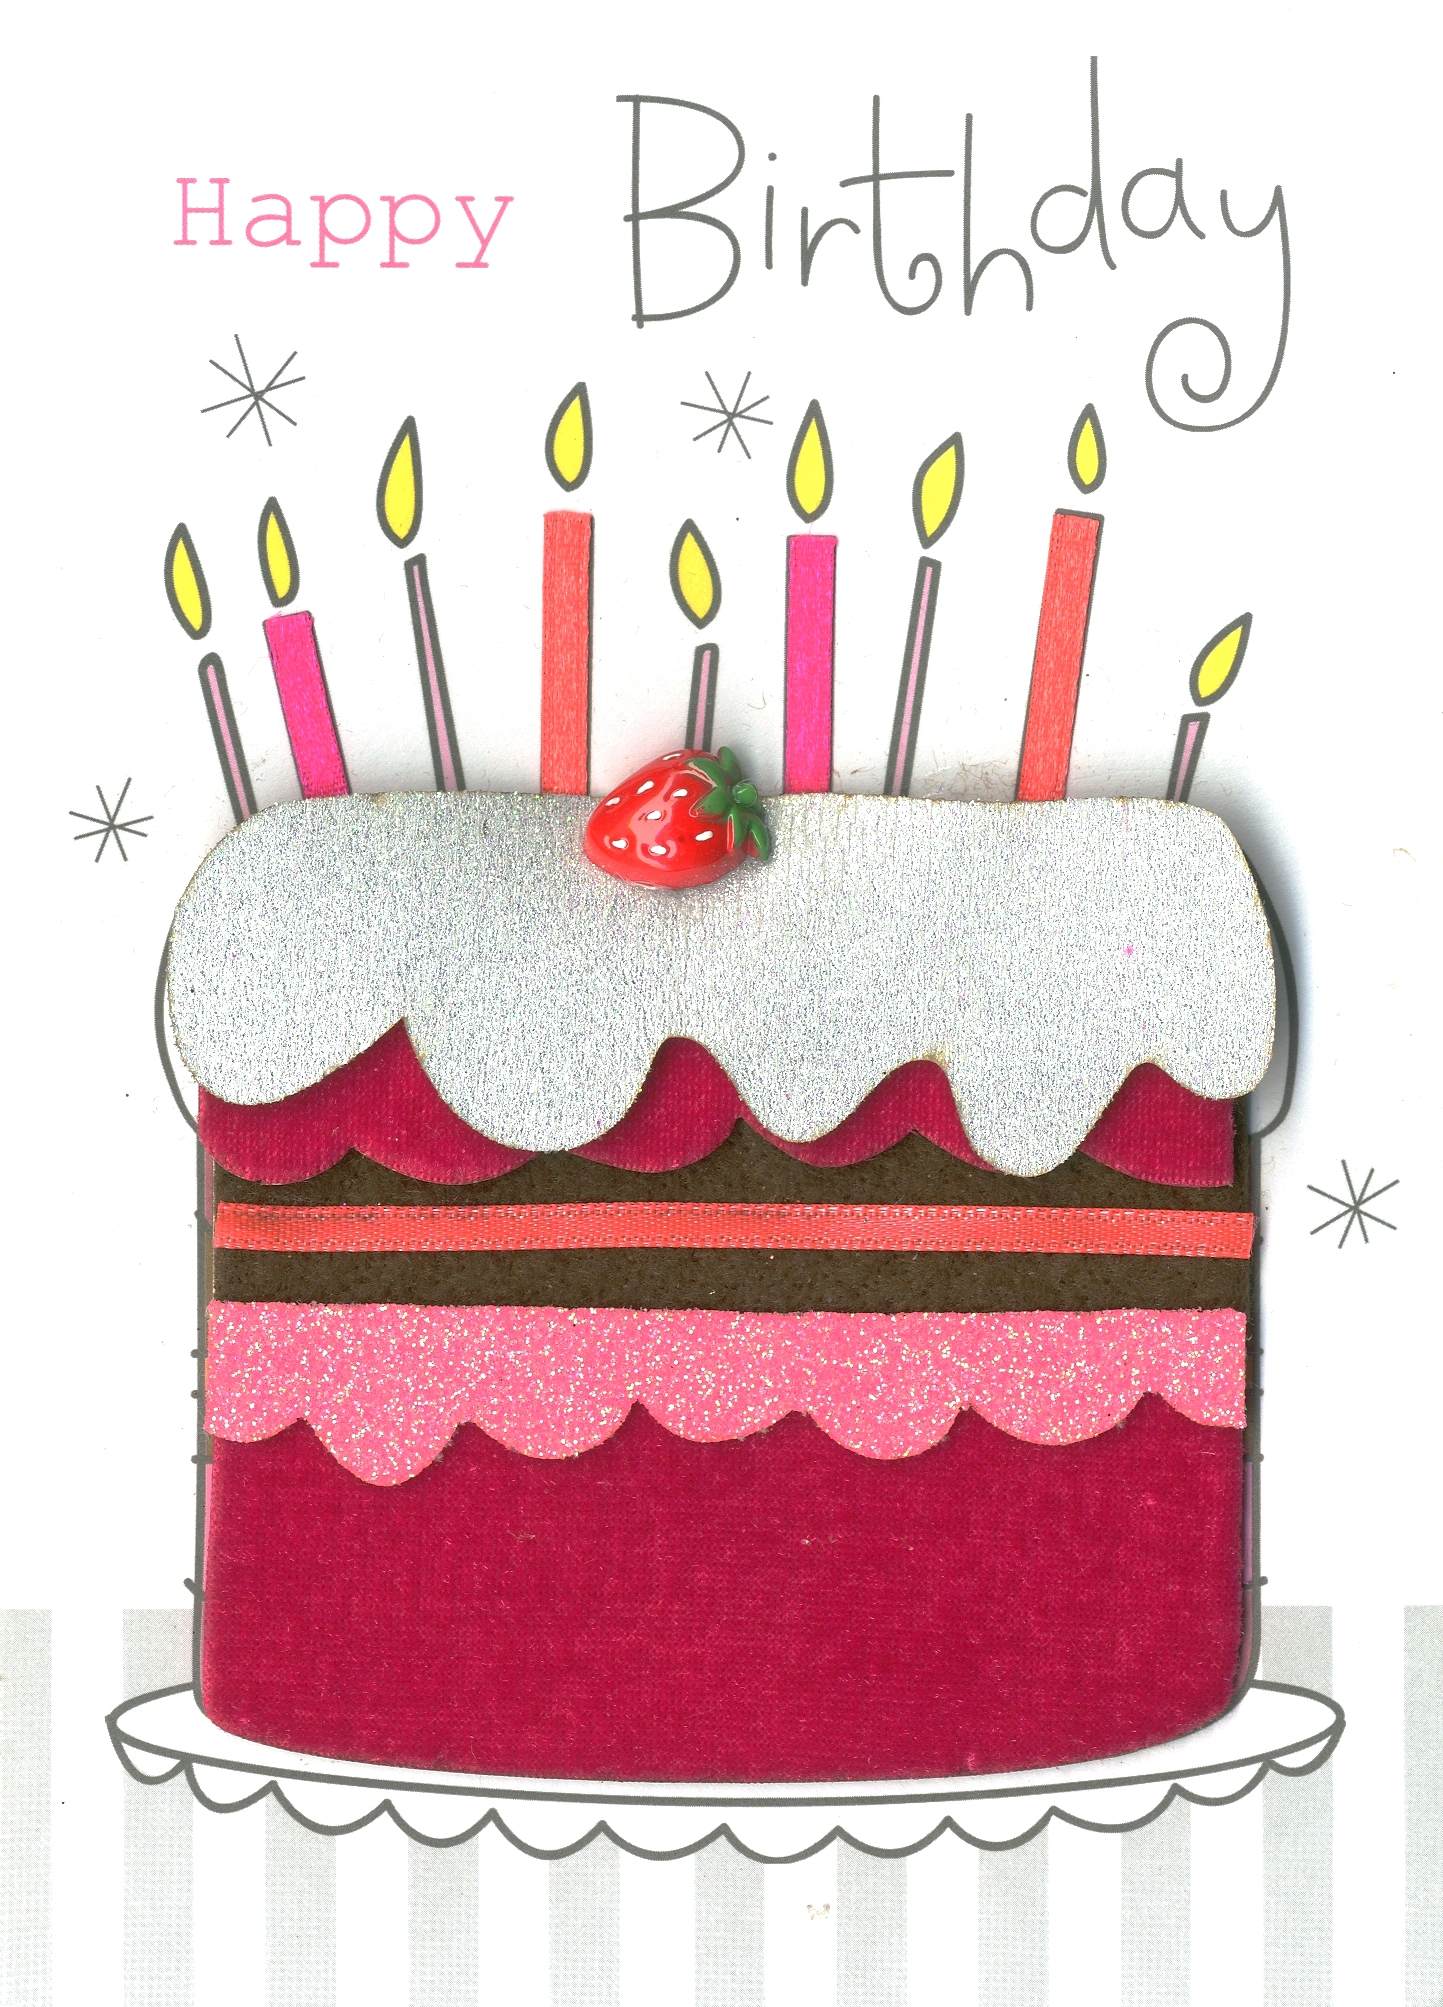 Happy Birthday Cake Embellished Greeting Card Cards Love Kates